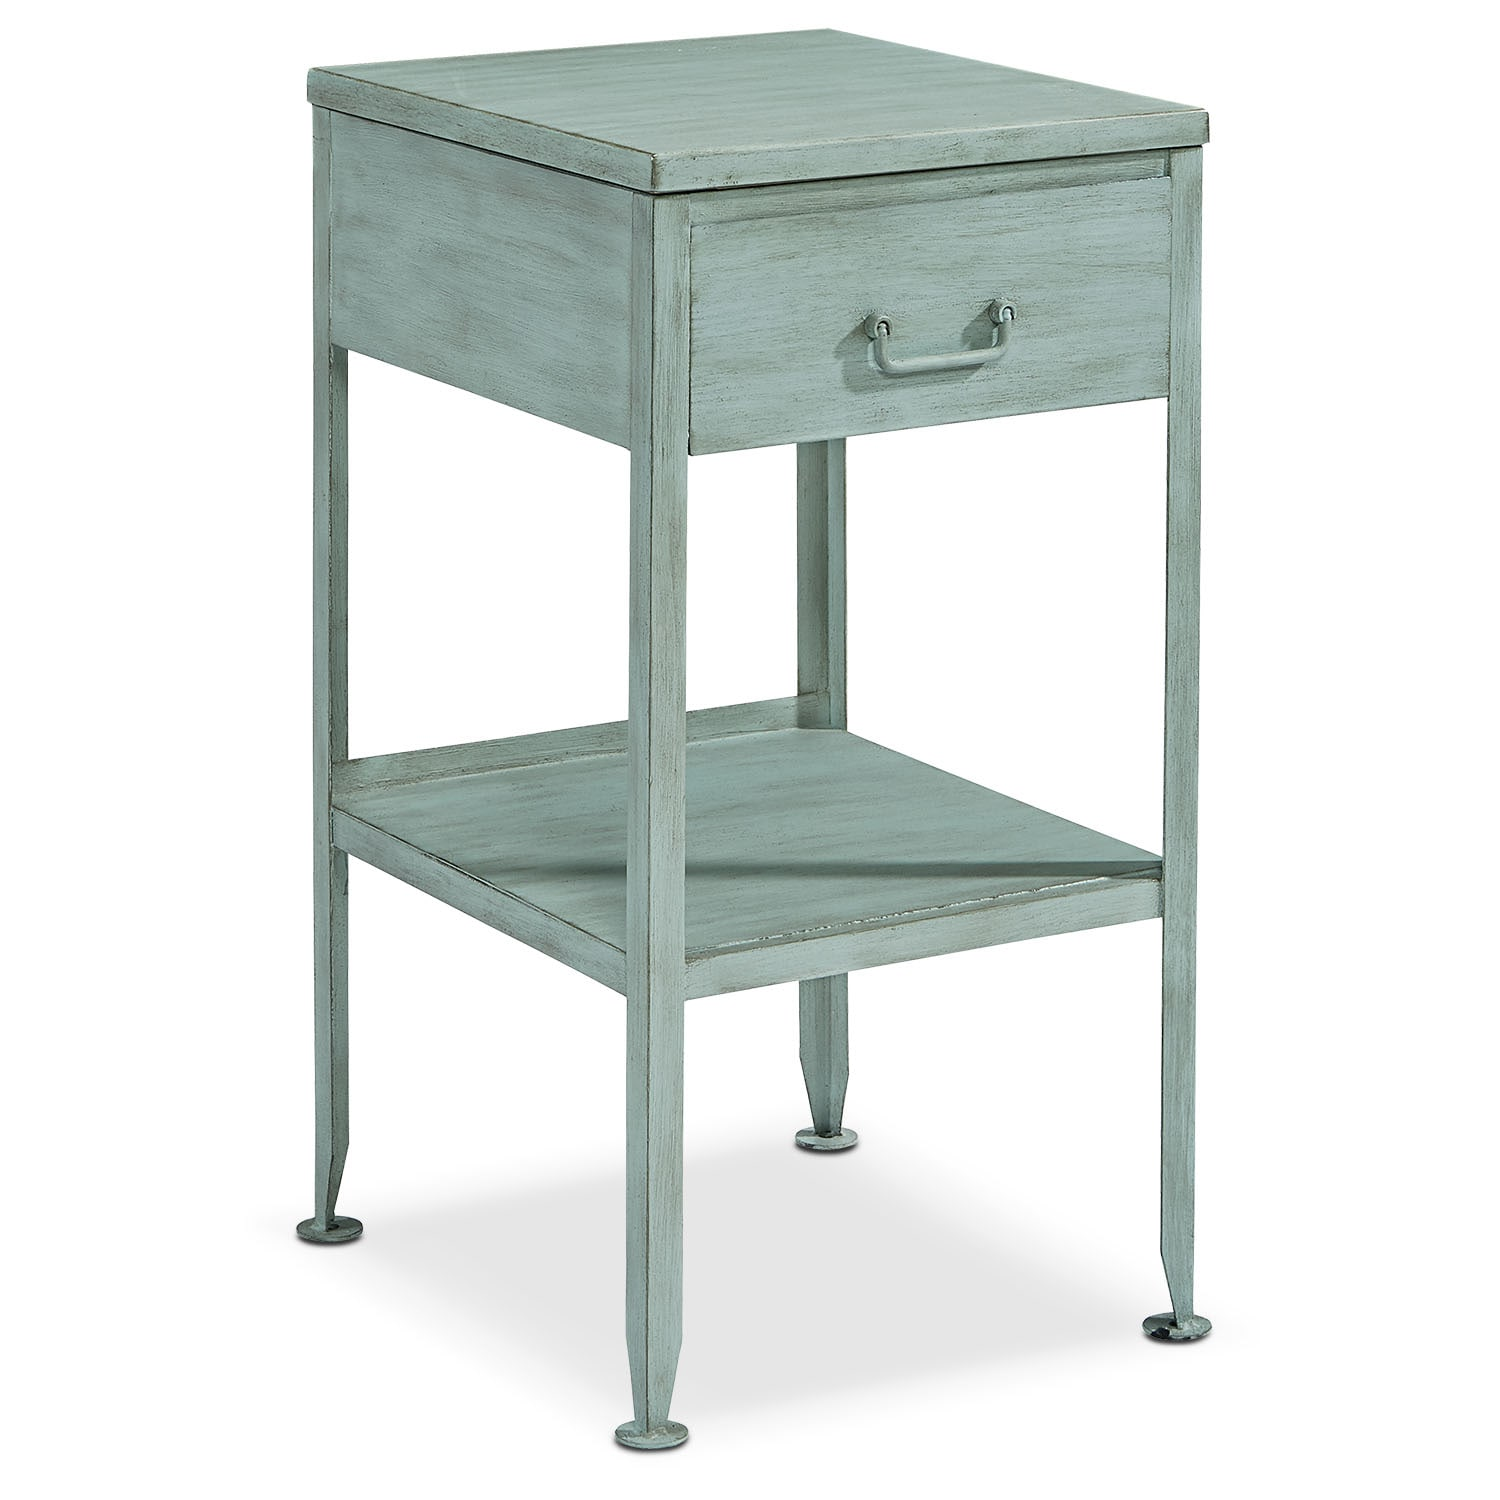 Metal Utility Side Table - French Blue